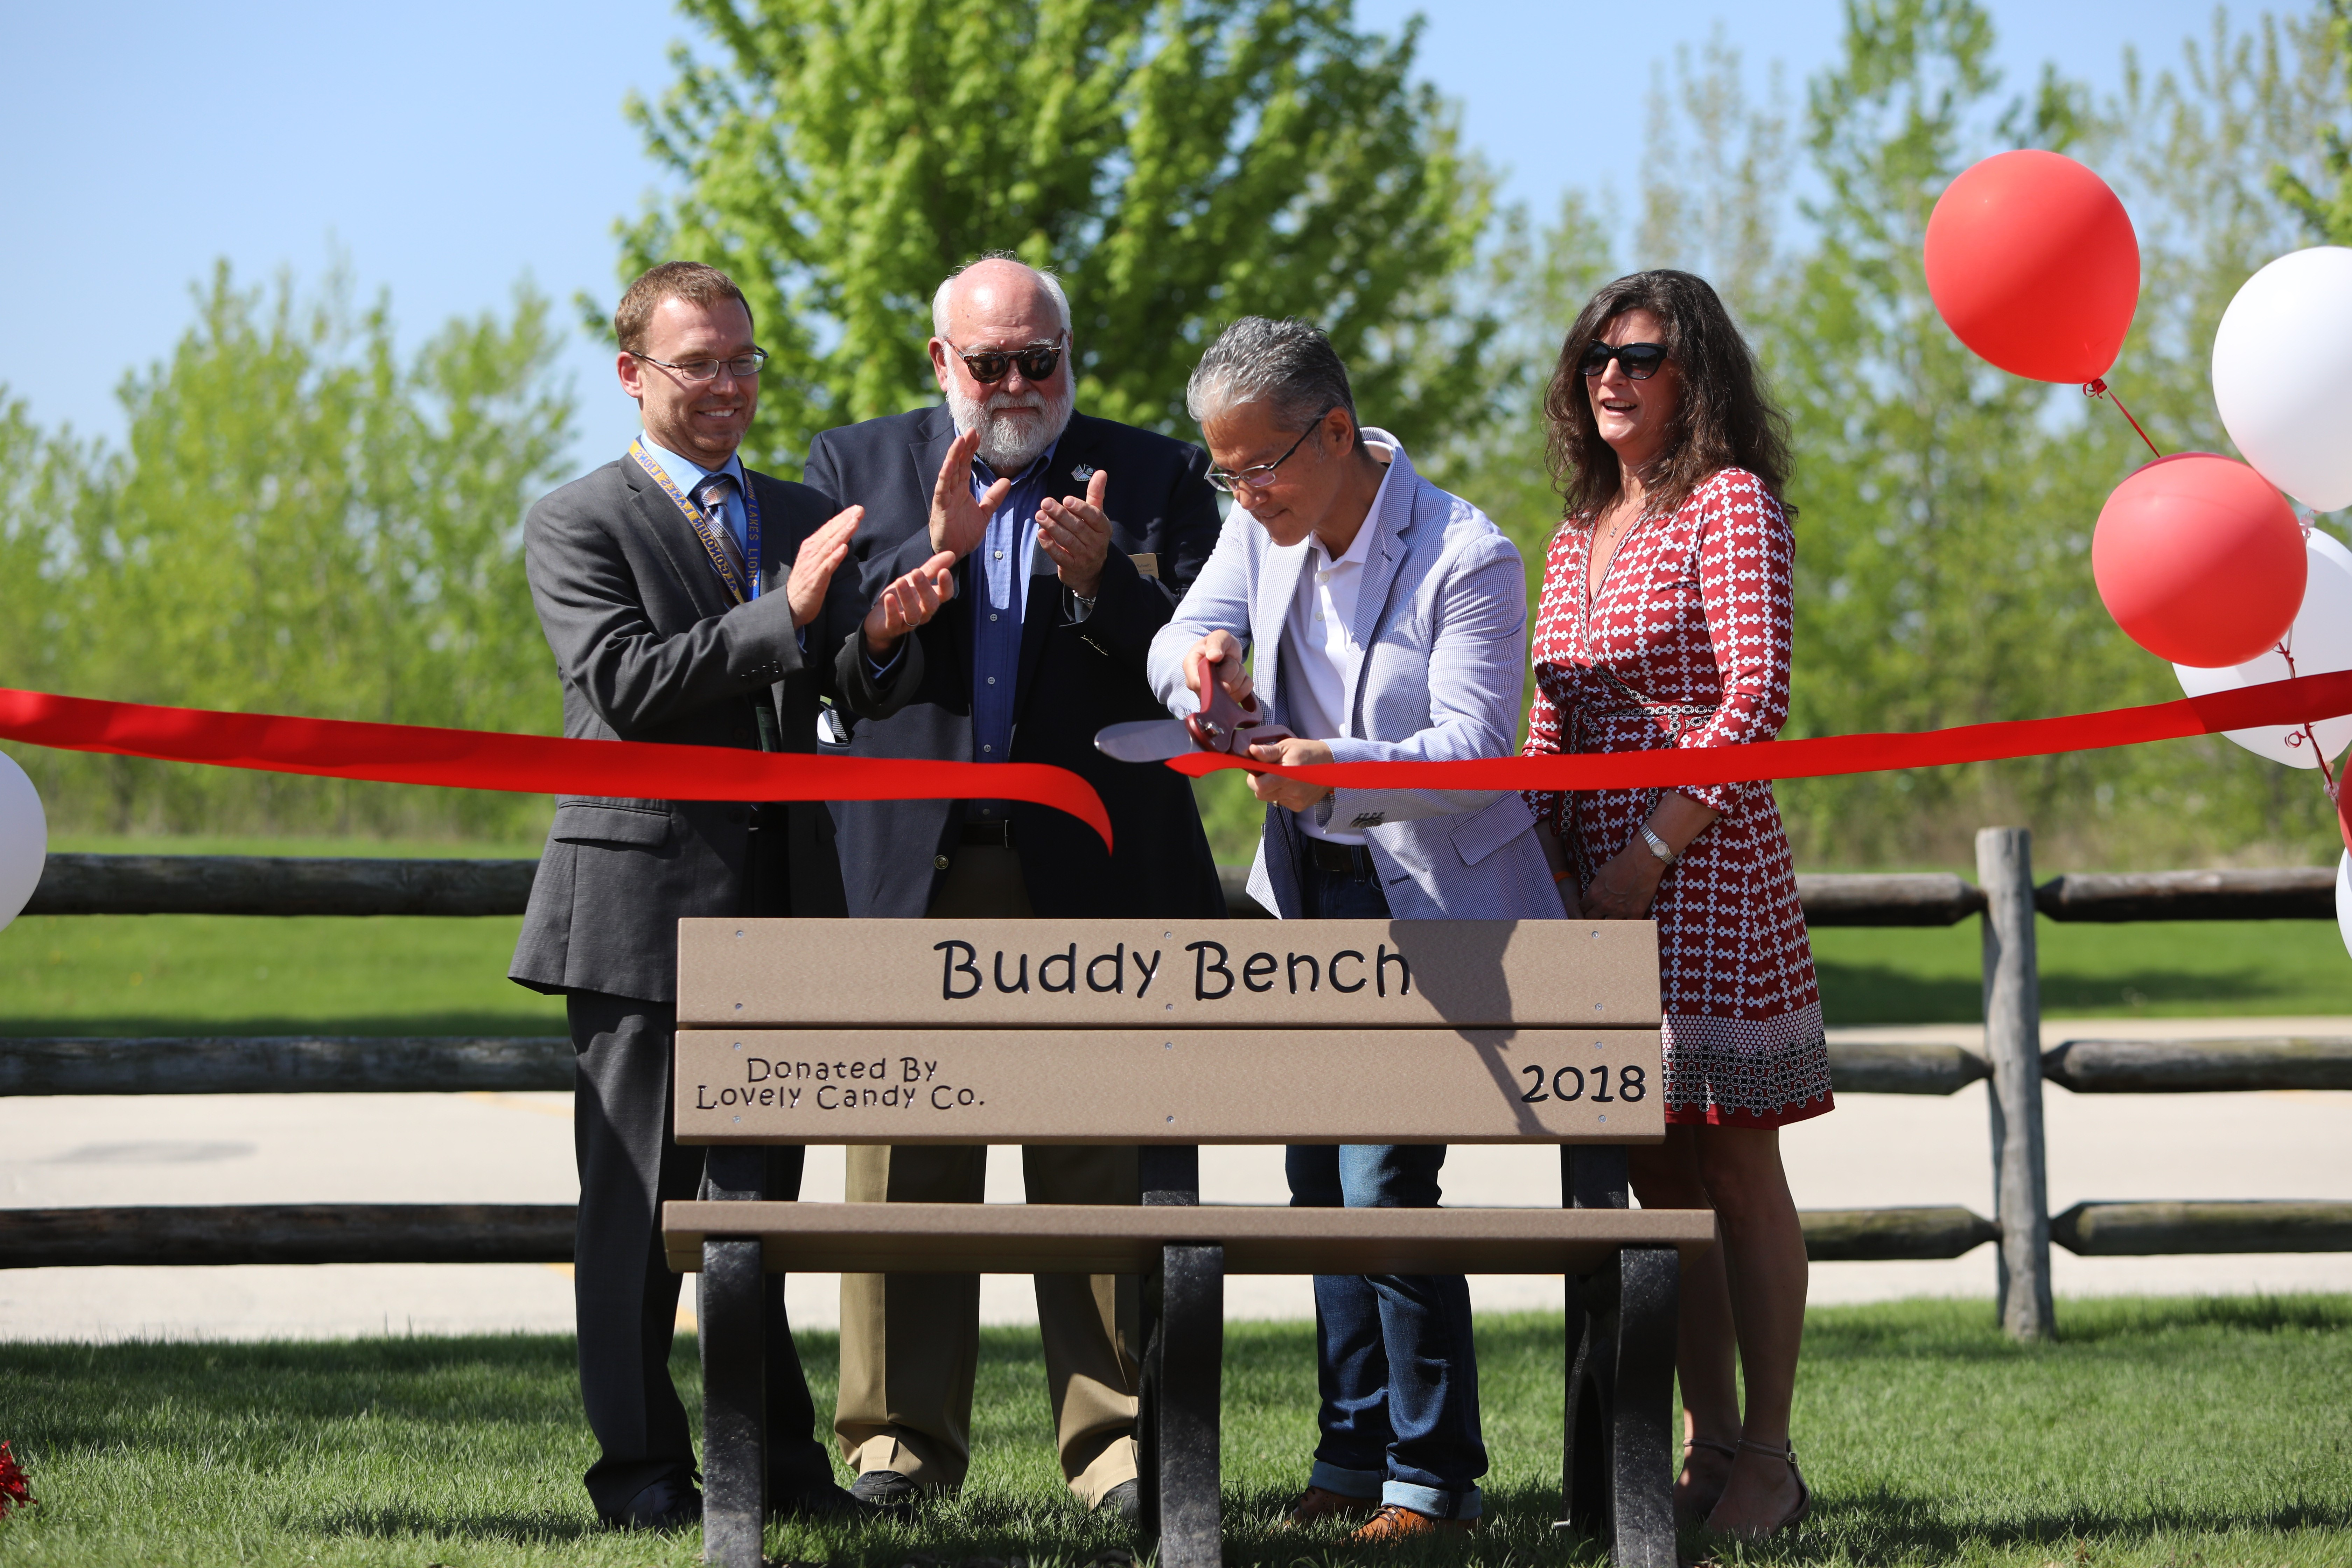 Lovely Bench Dedication Ribbon Cutting Ceremony